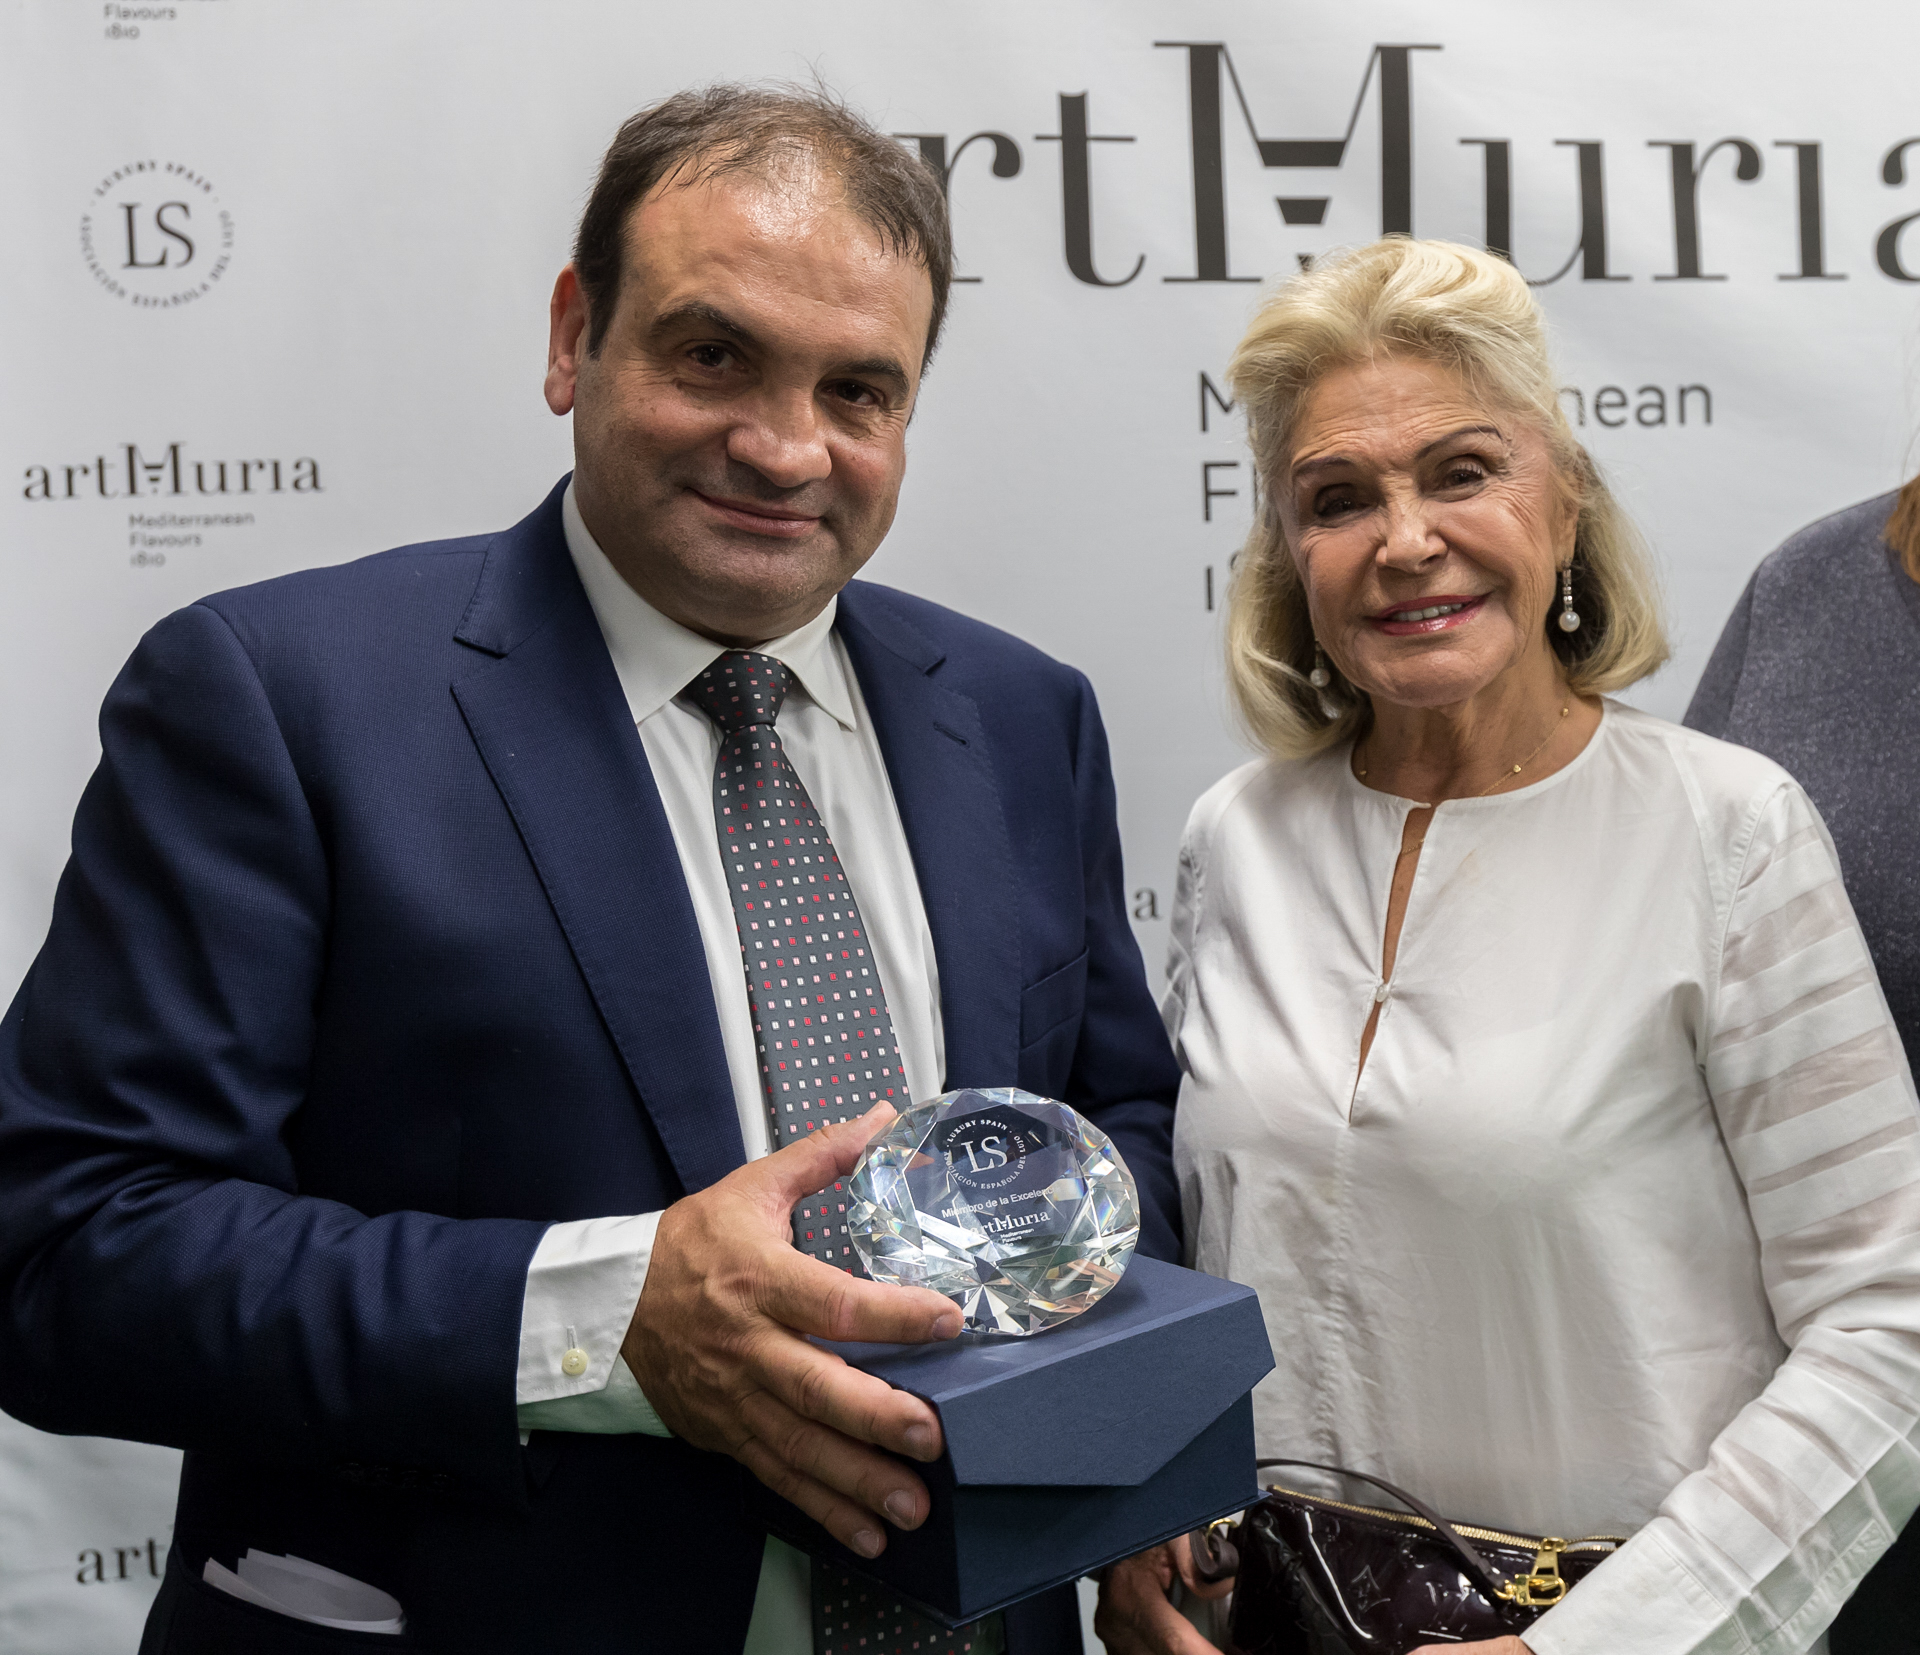 artMuria receives the highest distinction from the Spanish Luxury Association